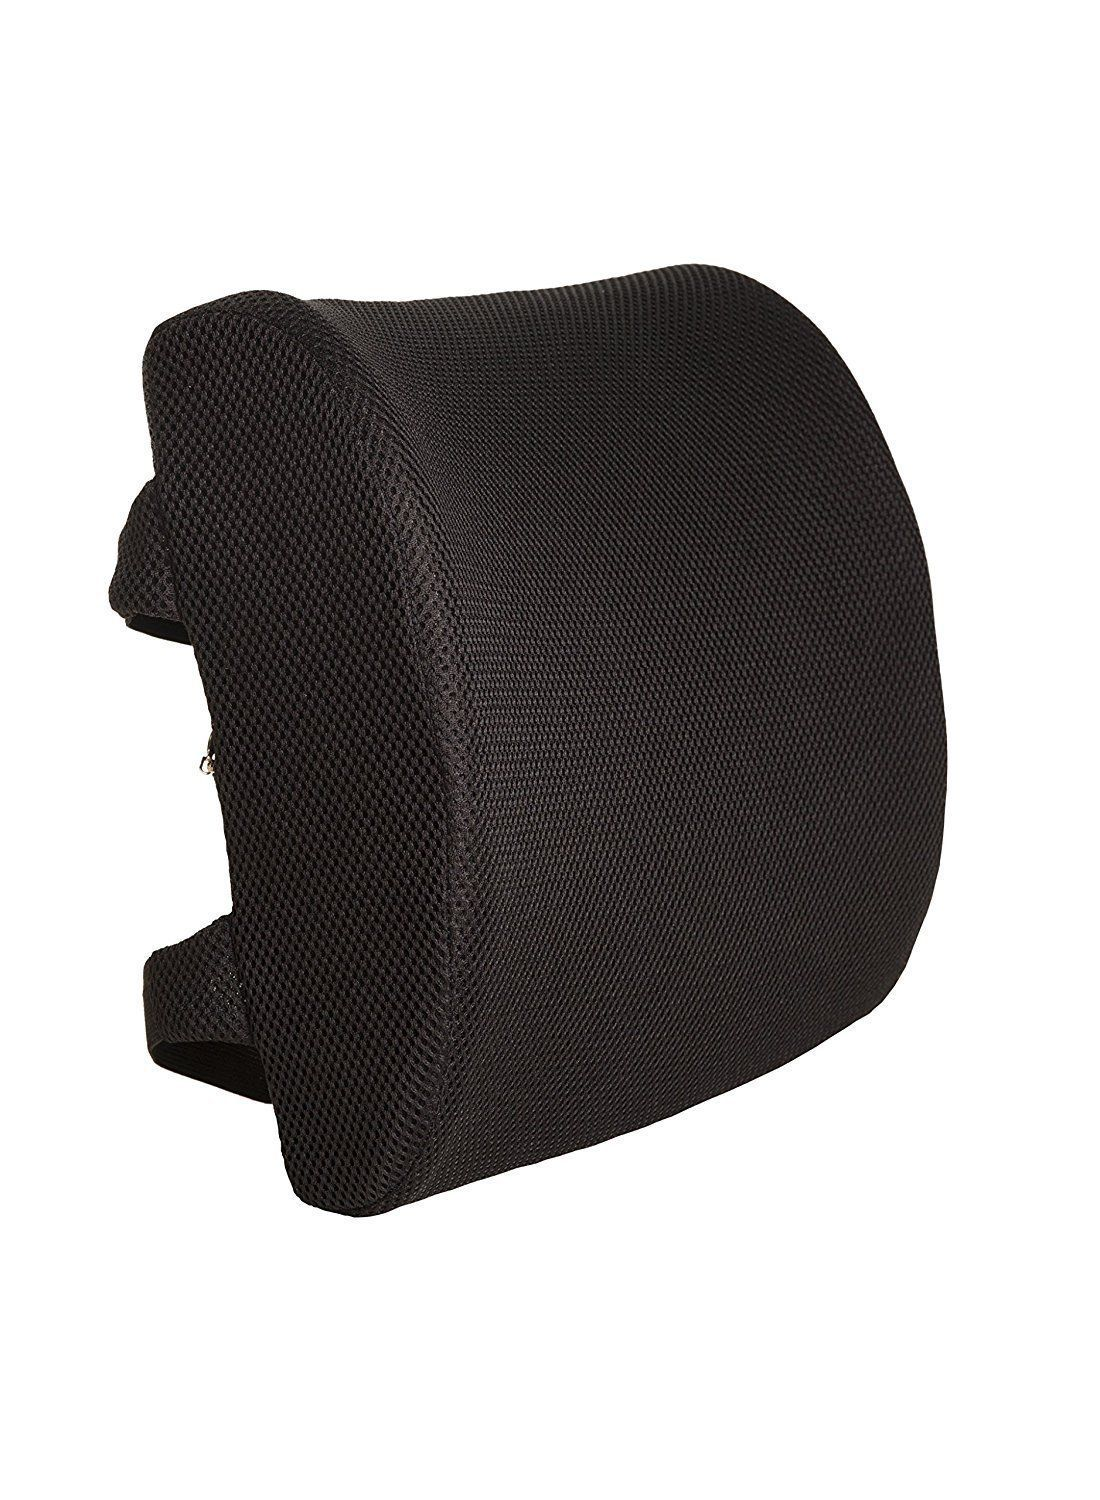 10 Best Lumbar Support Cushions That All Desk Workers Need Support Pillows Back Support Pillow Chair Pillow